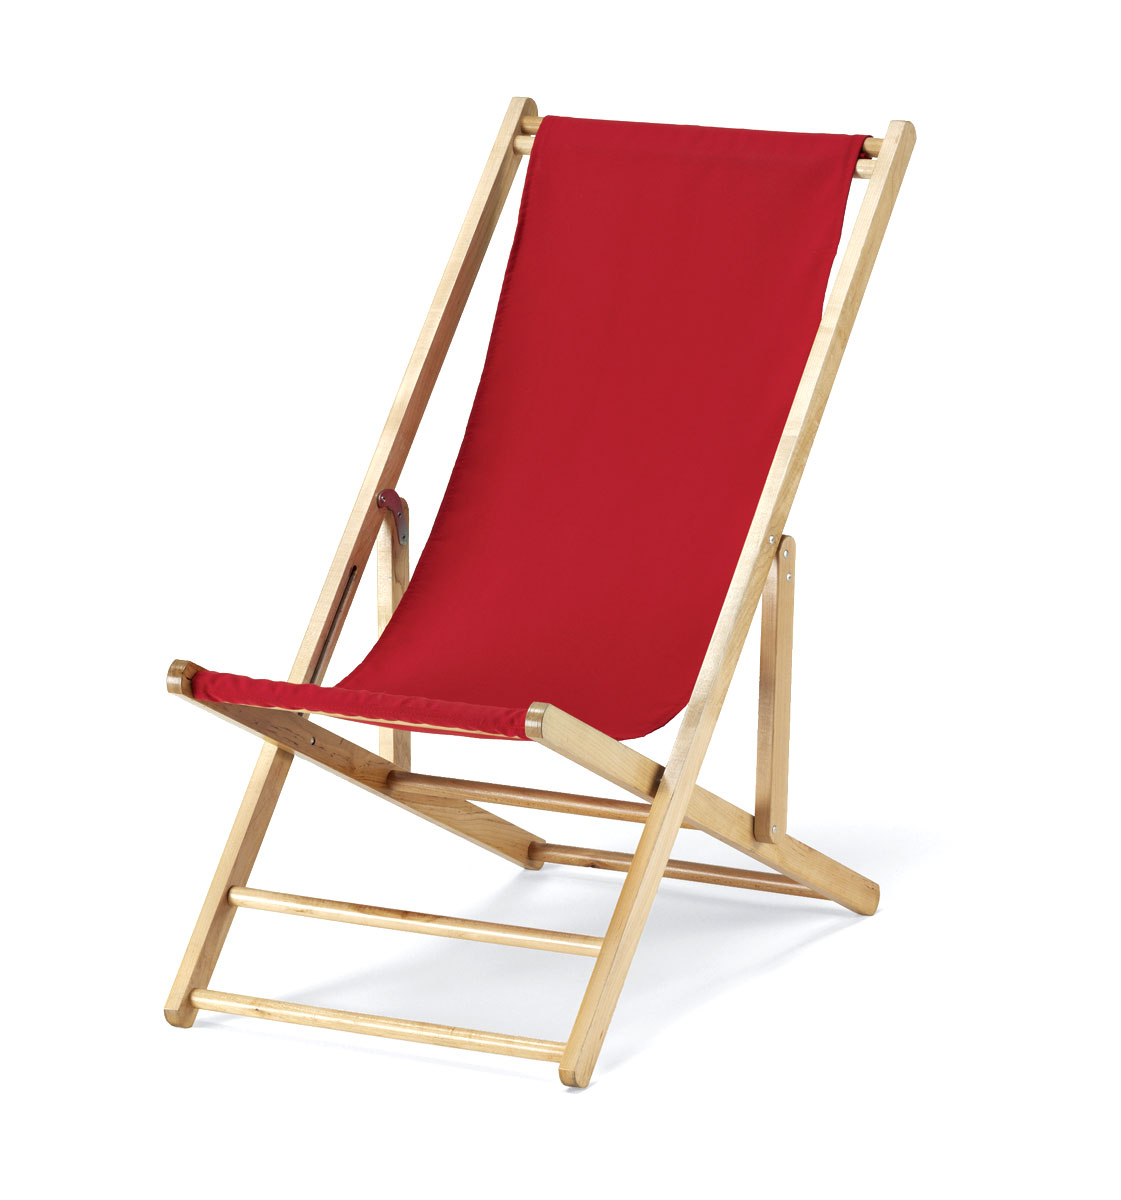 sling chairs for sale re patio arkansas travel images beach chair folding small jpg